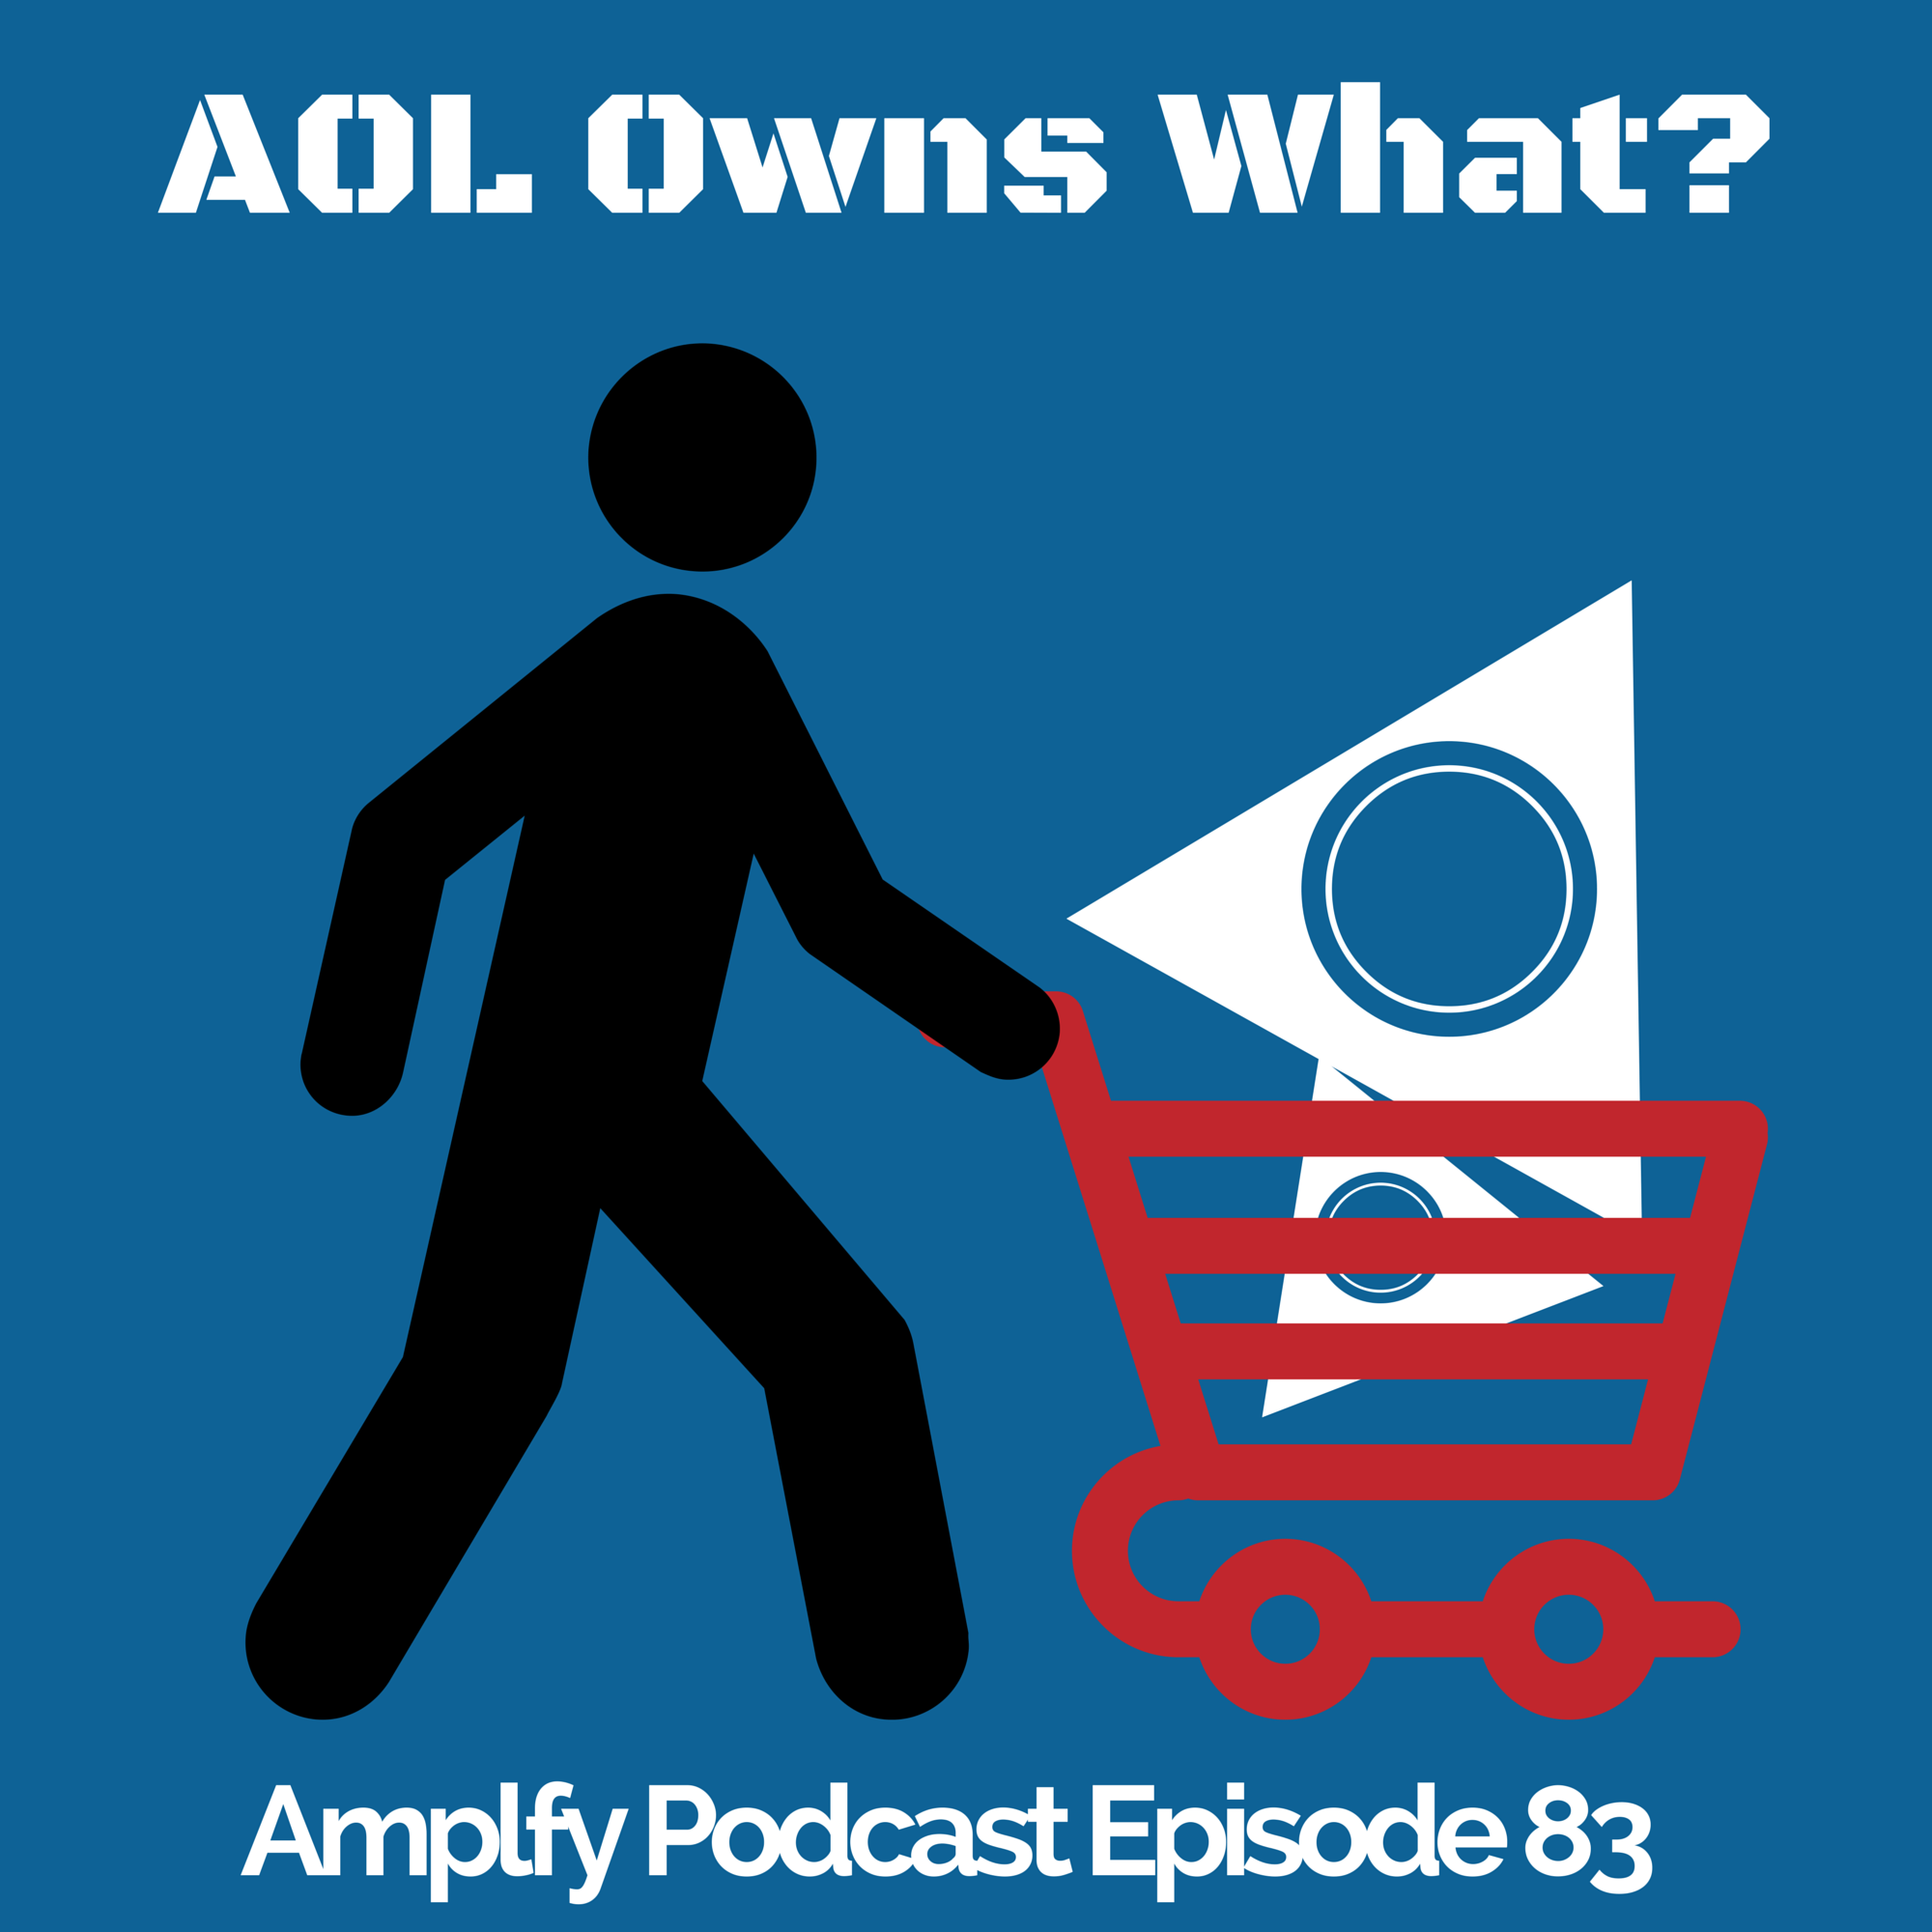 AOL Owns What